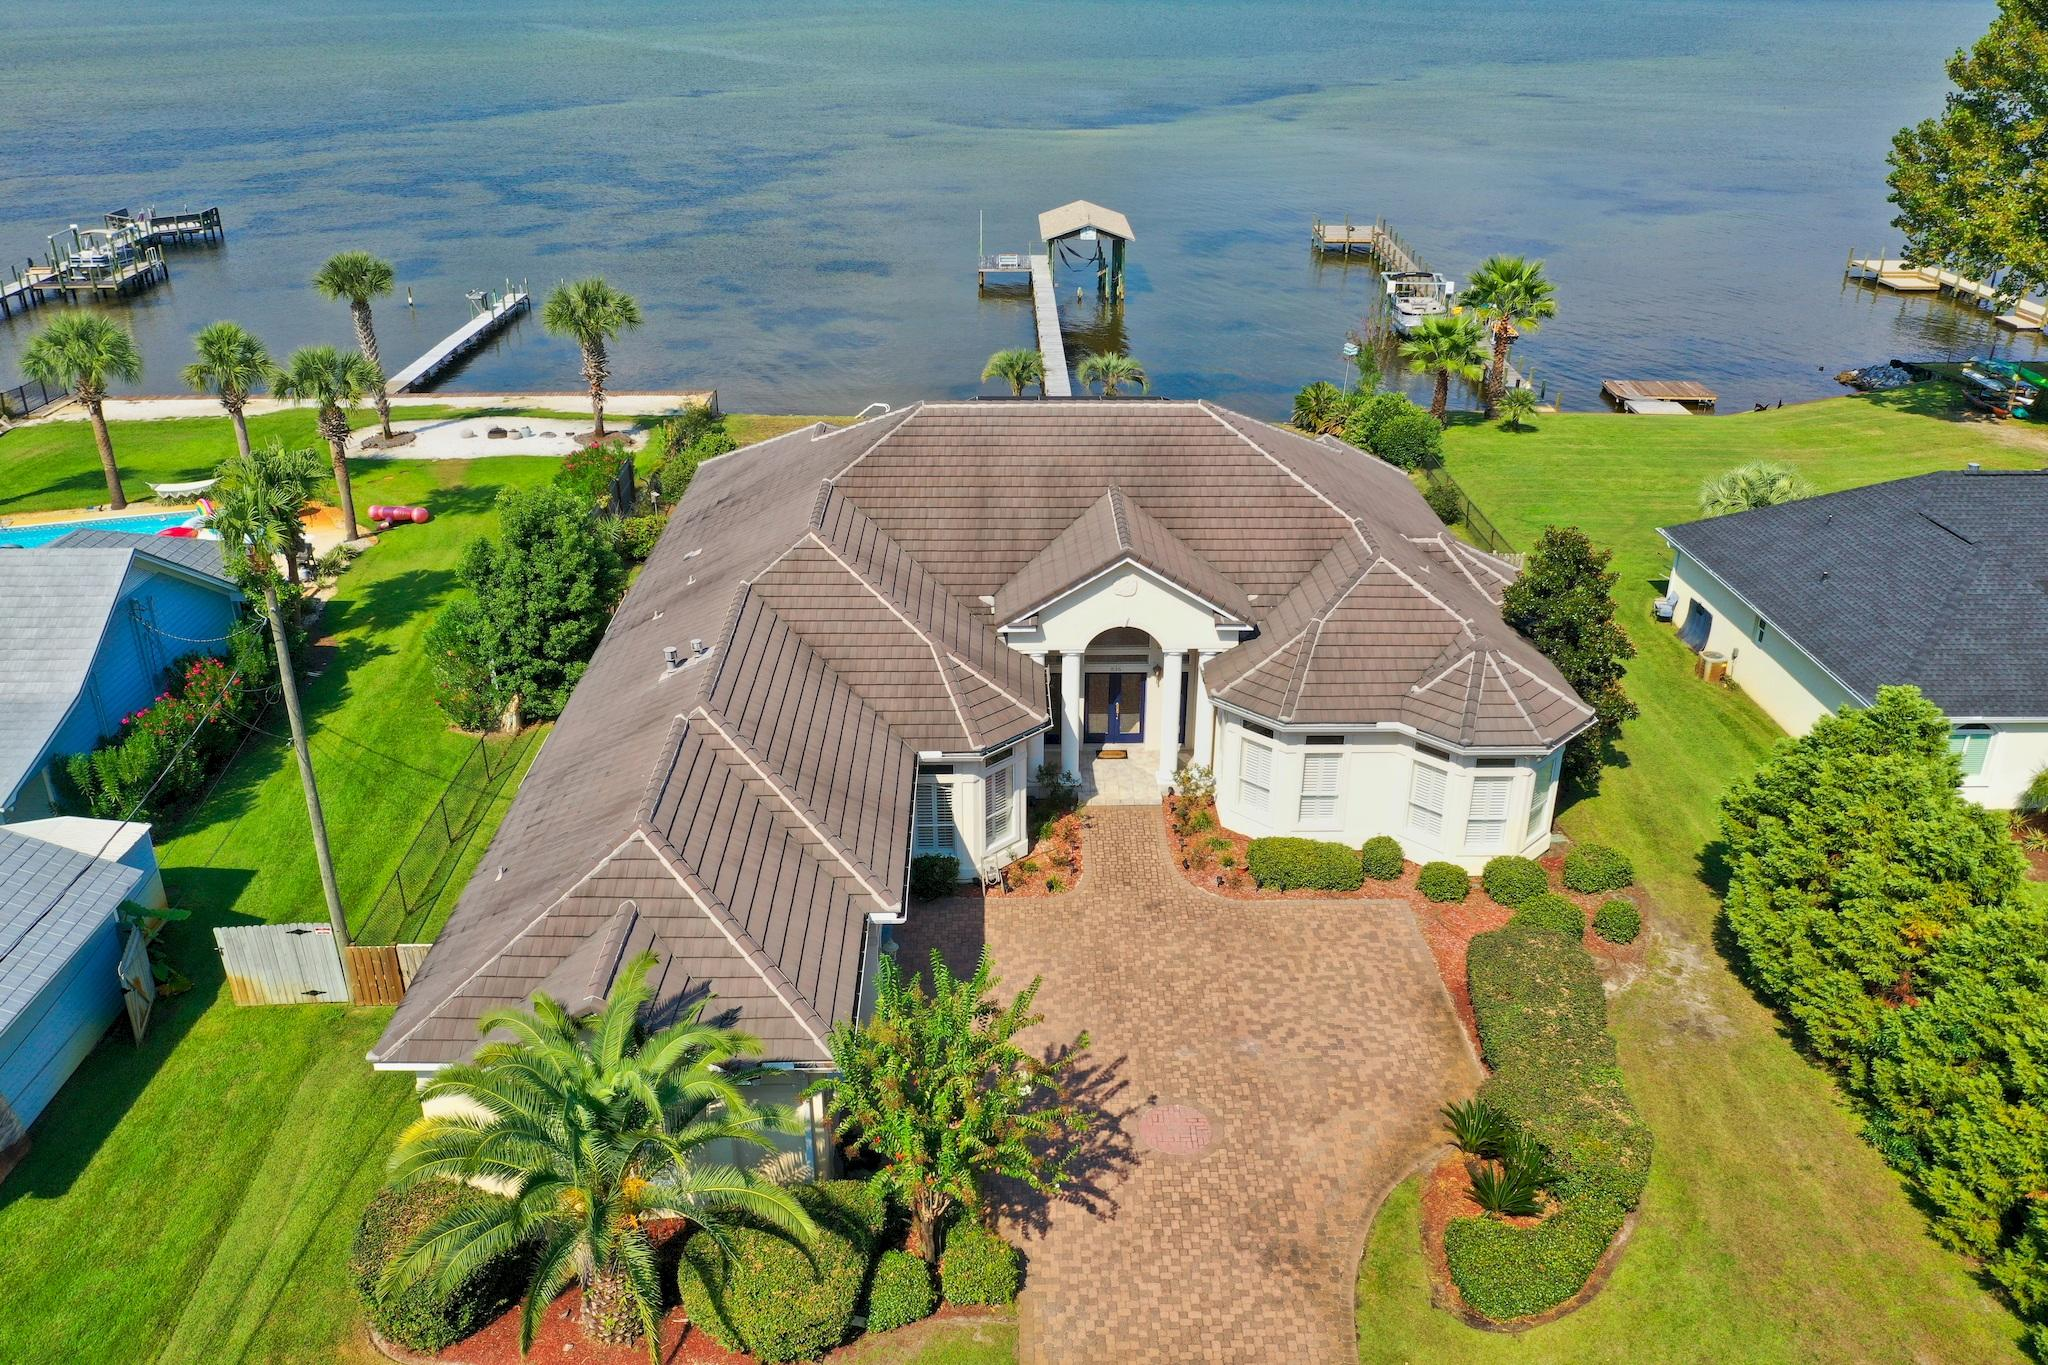 Enjoy coastal living in a serene tropical setting with this Bay front estate in Miramar Beach! This home is on an expansive and private lot boasting over 1/2 an acre.  With 100 ft of water frontage on the Bay, you have your own private oasis! Home is complete with dock, boathouse with slip, sun deck, incredible screened-in pool and covered lanai. Outdoor features a huge back yard with tropical landscaping setting this home apart from the rest. *Check out the lifestyle video and virtual tour of this amazing property in the Photos section.* Ideally the home is one level with beautiful architectural details like trayed ceilings, stunning archways, crown molding & lots of windows offering great natural light and panoramic views of the Bay. The interior has been repainted for a fresh look along with new chandeliers, new hardwood flooring and updated kitchen & baths with Quartz countertops. Kitchen also includes new stainless steel appliances including a double oven and smooth top range, new custom tiled mosaic backsplash, and freshly painted kitchen cabinets. There is a wet bar nearby with a wine fridge, sink and extra storage as well as a generously sized walk-in pantry. The full bath for guests is stunning with newly tiled shower with glass door and Quartz counters. There is also a half bath near the kitchen which is easy access while entertaining. There are 4 bedrooms including a Bay front master, an additional flex room and 3-car garage. The beautiful master bedroom features a tray ceiling, several windows allowing views of the Bay from just about every angle, wood flooring, a master closet with built-ins and an en-suite bathroom. You will feel like you are at the spa in the master bath with Jacuzzi tub, double vanities newly appointed with Quartz and walk-in tiled shower with glass block entrance and recessed lighting. The split bedroom floor plan allows the master bedroom extra privacy away from the other three guest bedrooms. All three guest bedrooms are generous in size and feature crown molding and plantation shutters. There is a great flex room located at the front of the home east of the foyer that would make a terrific office.   The large, covered lanai is the perfect spot to relax and can be accessed from several rooms in the house including living area, dining nook, great room and master bedroom. The screened-in pool area with paver sun deck is ideal for tanning then cooling off with a refreshing swim. The covered porch was freshly painted and offers a fantastic swing to lounge in while taking in breathtaking views of the Bay. Incredible opportunity to own such a prime location with over half an acre of direct Bay front, and just 5 minutes from the pristine beaches along the emerald green waters of the Gulf of Mexico! You can easily access the beach by golf cart across Holiday Road and are also near many dining, shopping and entertainment options. This is an amazing opportunity for coastal living!  *****Appraisal at $1,200,000 from last year when they refinanced. Available upon request.